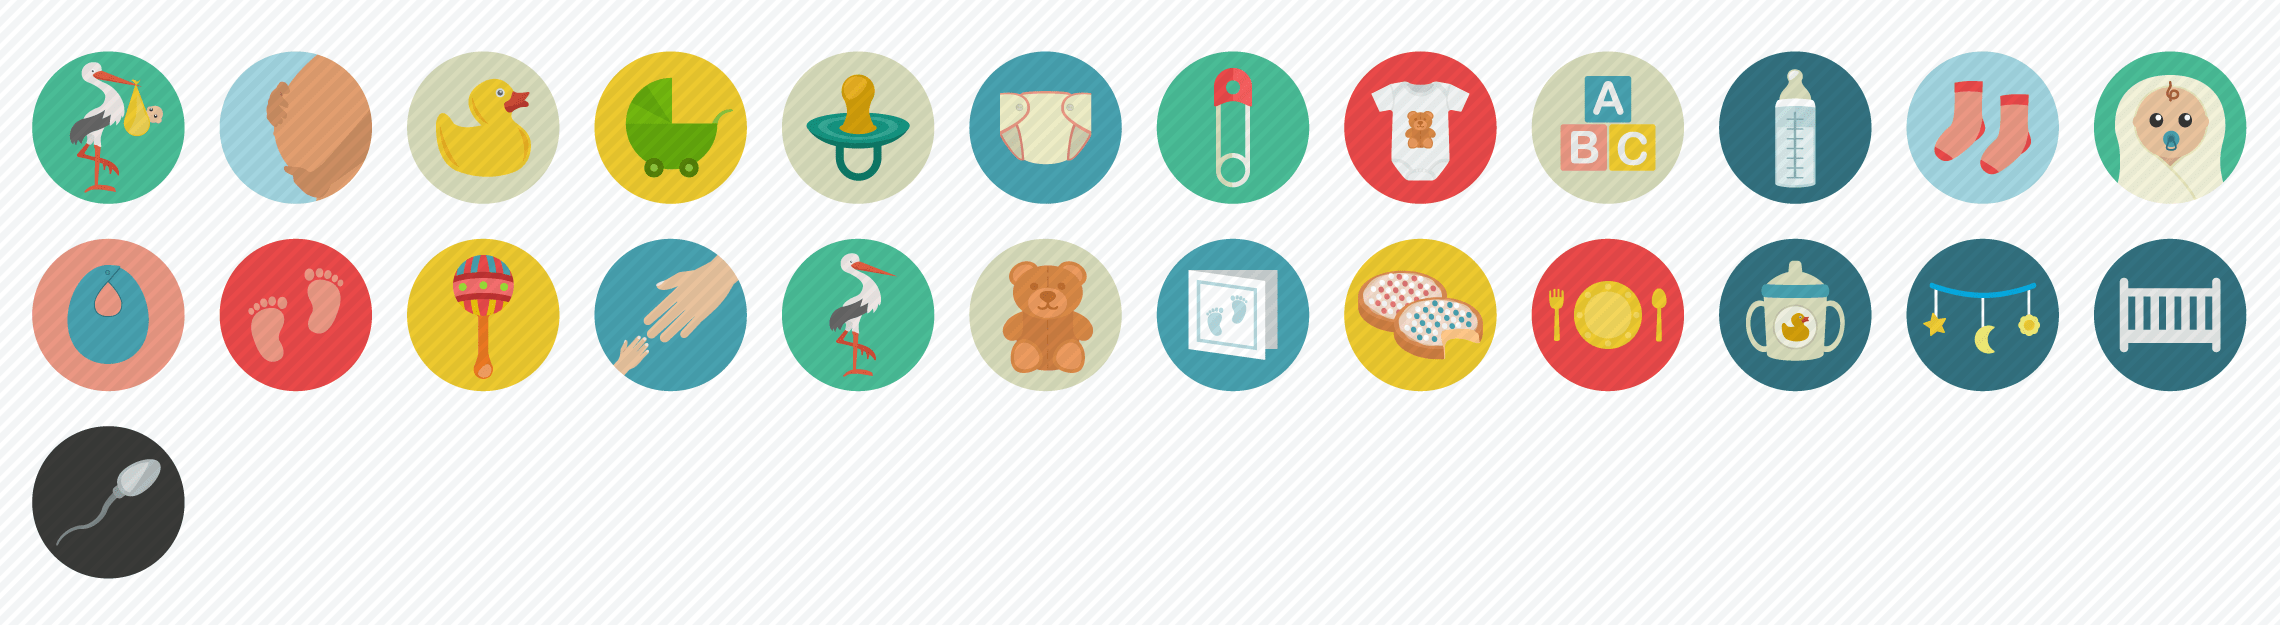 Pregnancy_Babycare_Flat_Icons